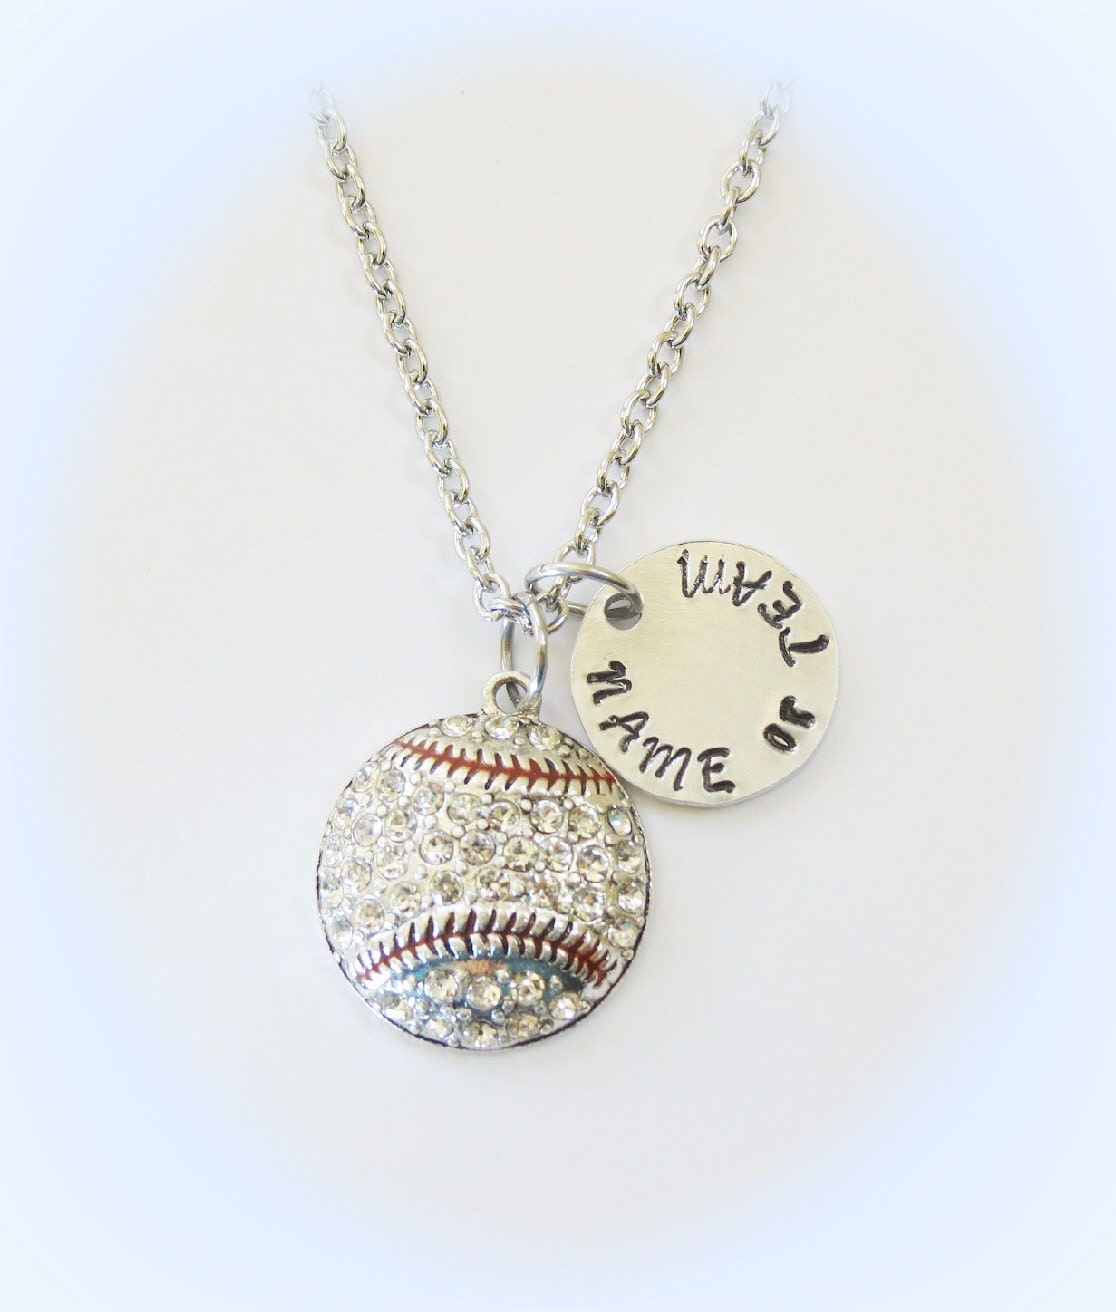 necklace jewelry fundraising softball wholesale n baseball necklaces spba closeup